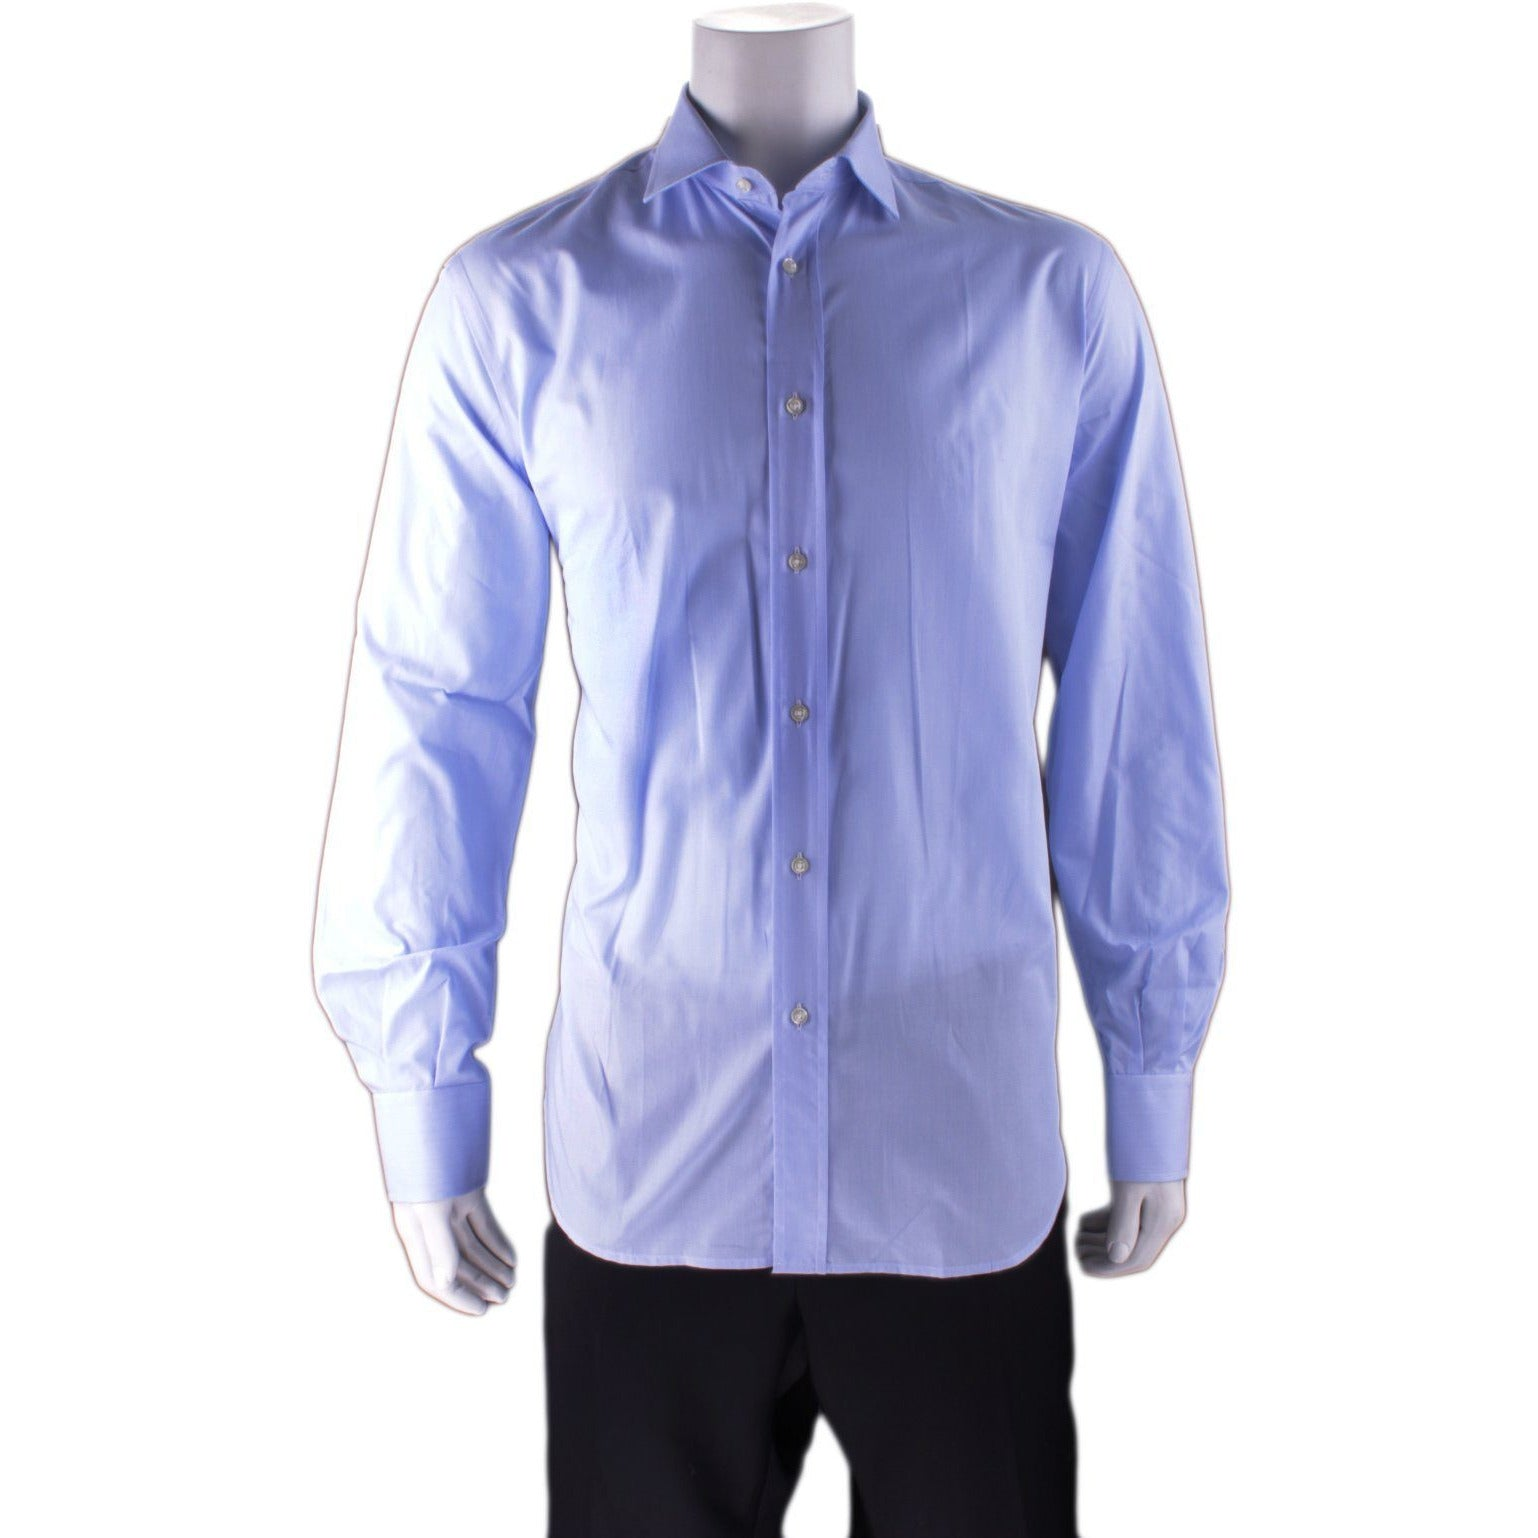 Pierre Balmain Camicia Uomo Ml MENS DRESS SHIRT Pierre Balmain